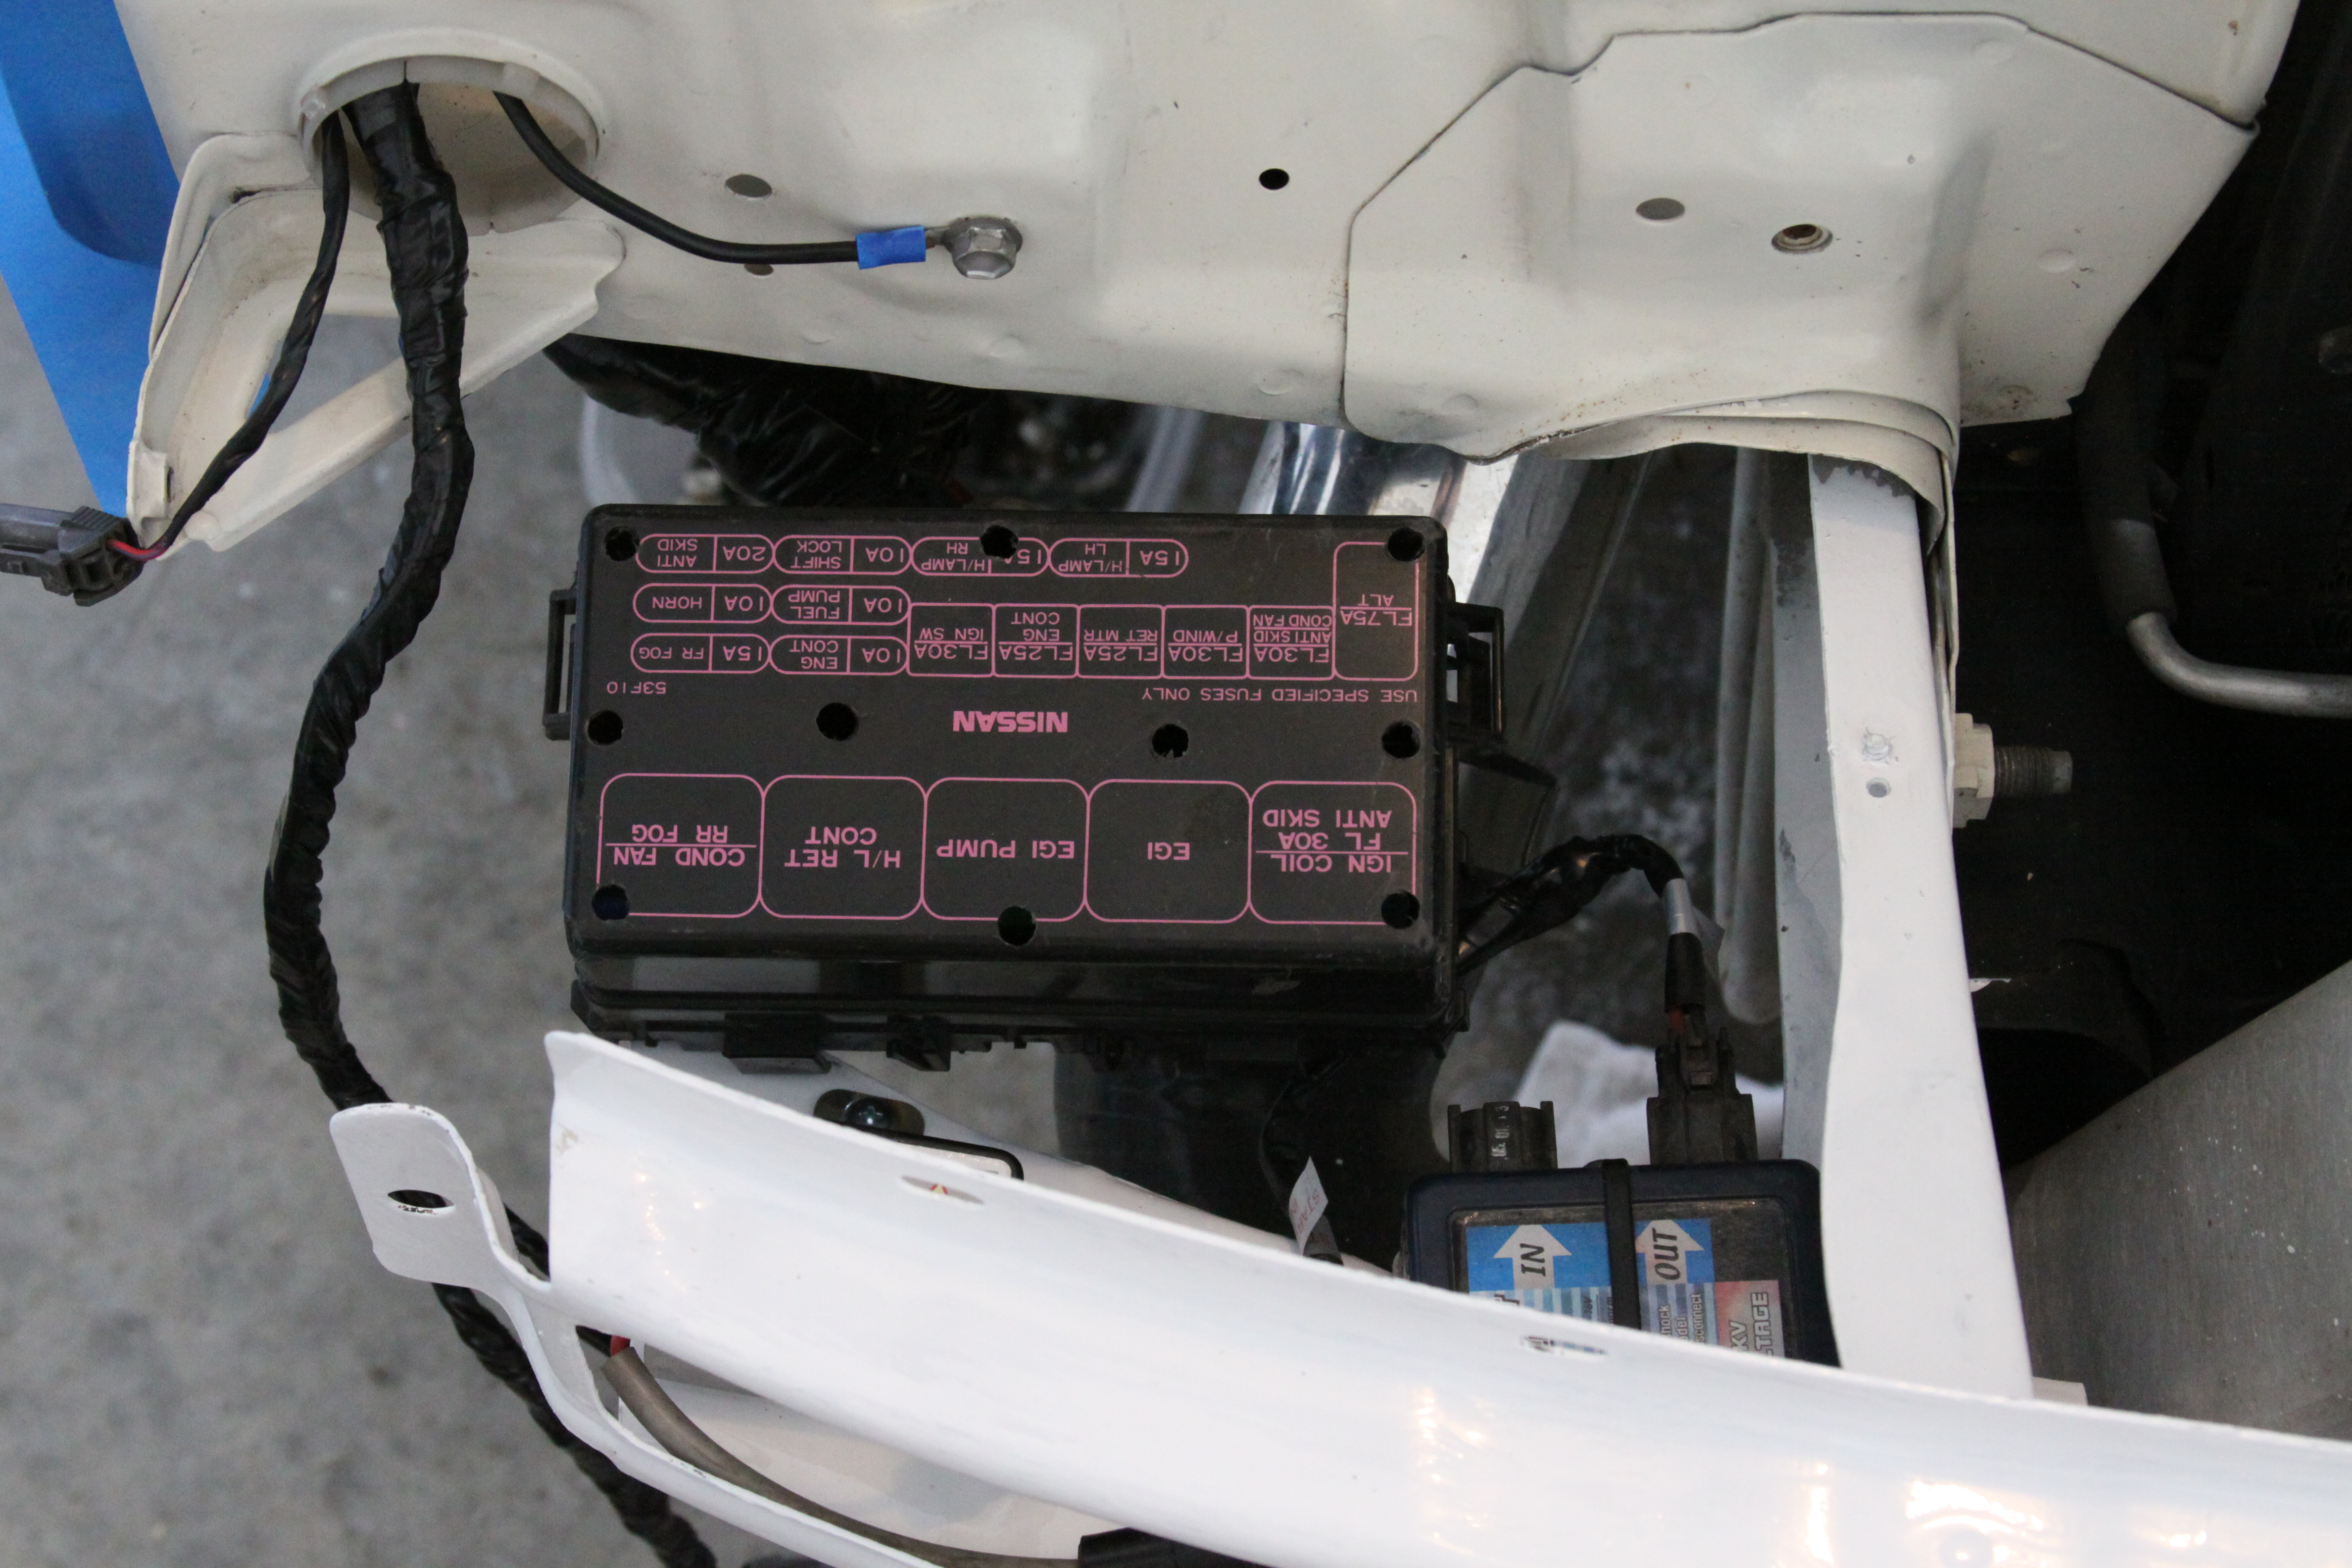 fuse box s13 hatch wiring diagramfuse box s13 hatch 5 [ 4752 x 3168 Pixel ]